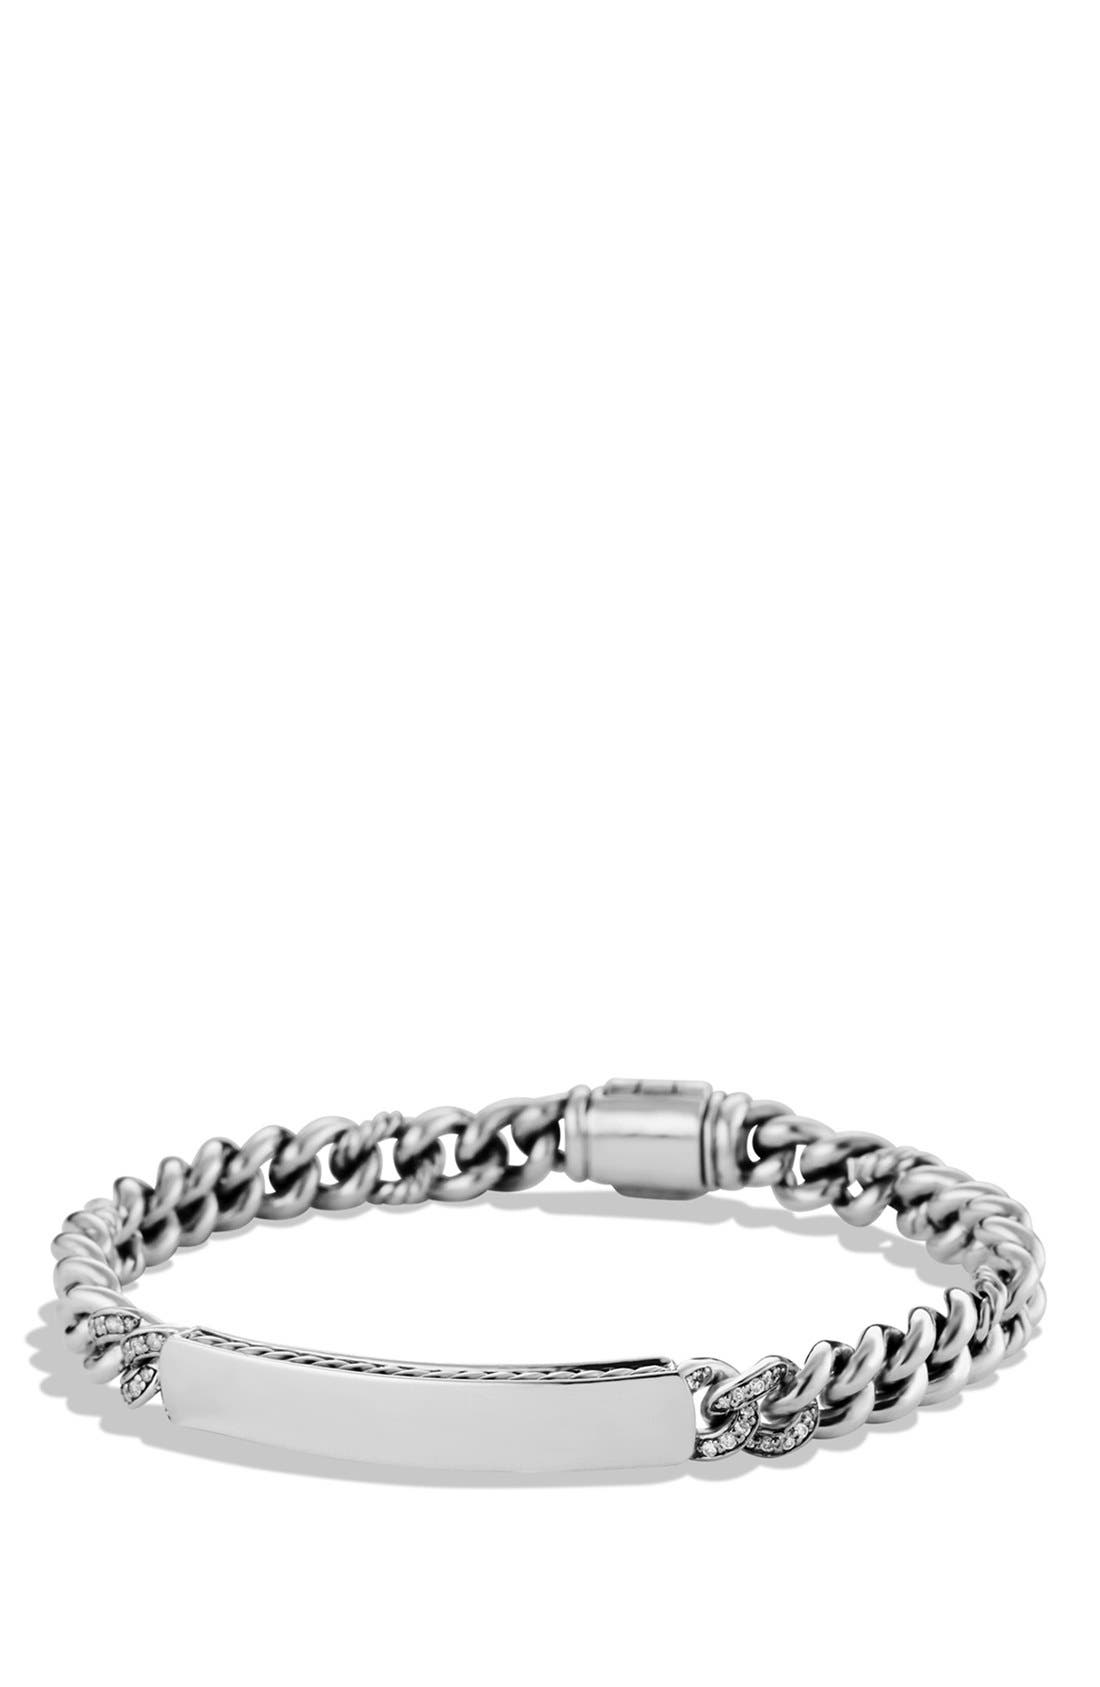 'Petite Pavé' Curb Link ID Bracelet with Diamonds,                             Main thumbnail 1, color,                             Diamond/ Silver